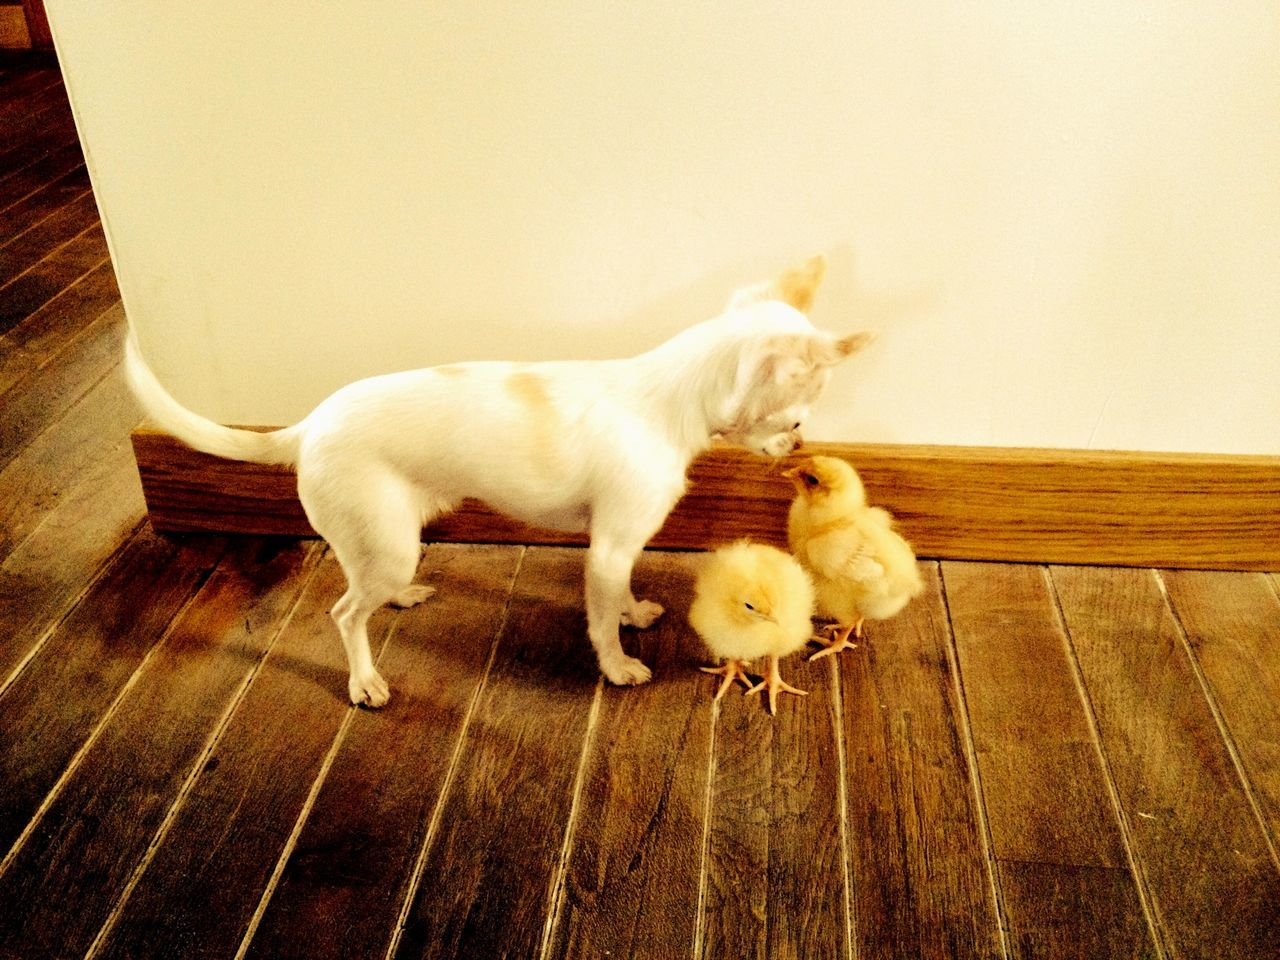 Chihuahua Staring Baby Chickens On Hardwood Floor